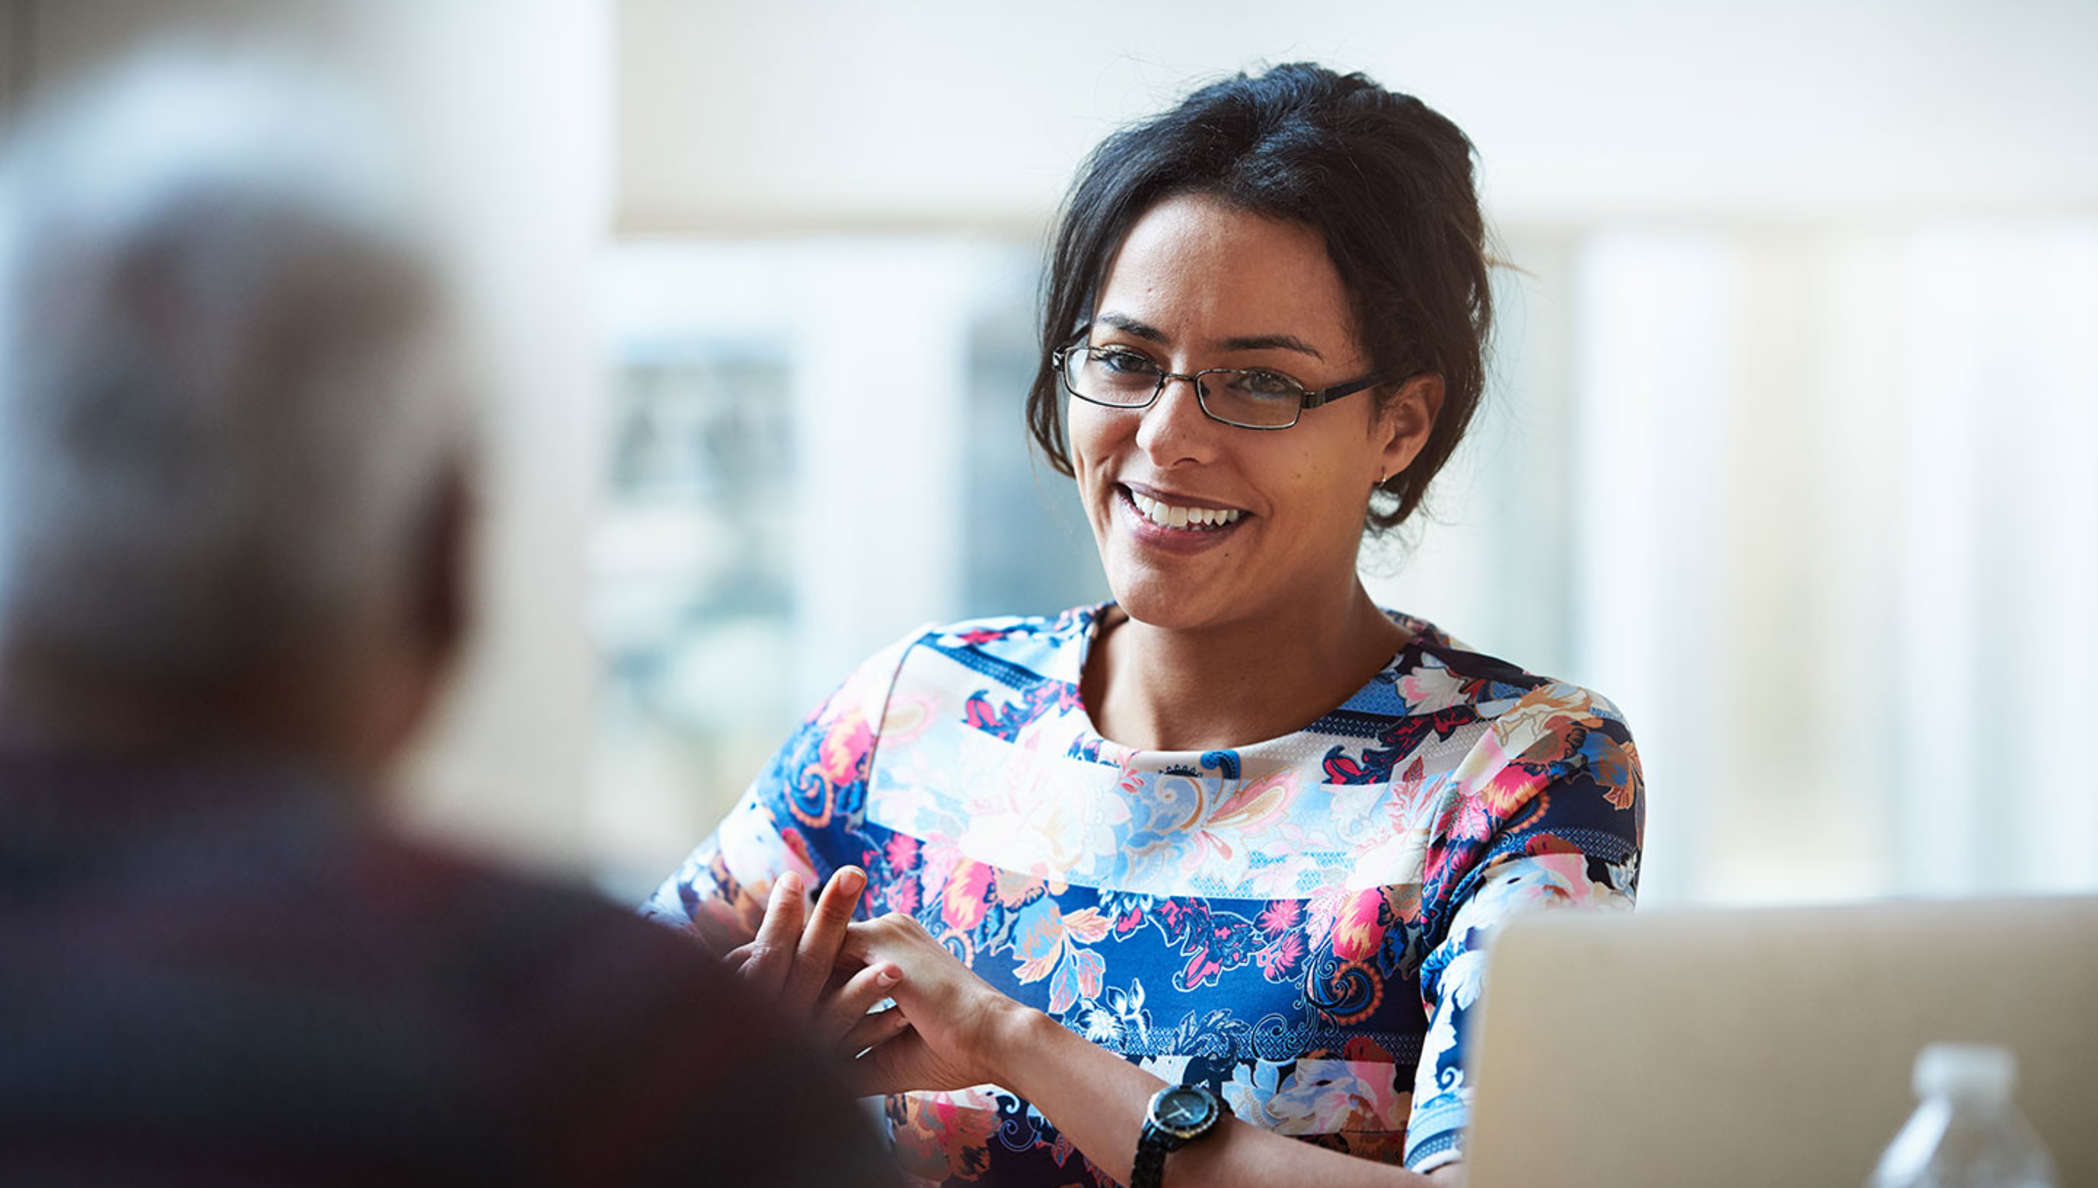 Nurse in a meeting with a patient to discuss DocuSign electronic signing options.